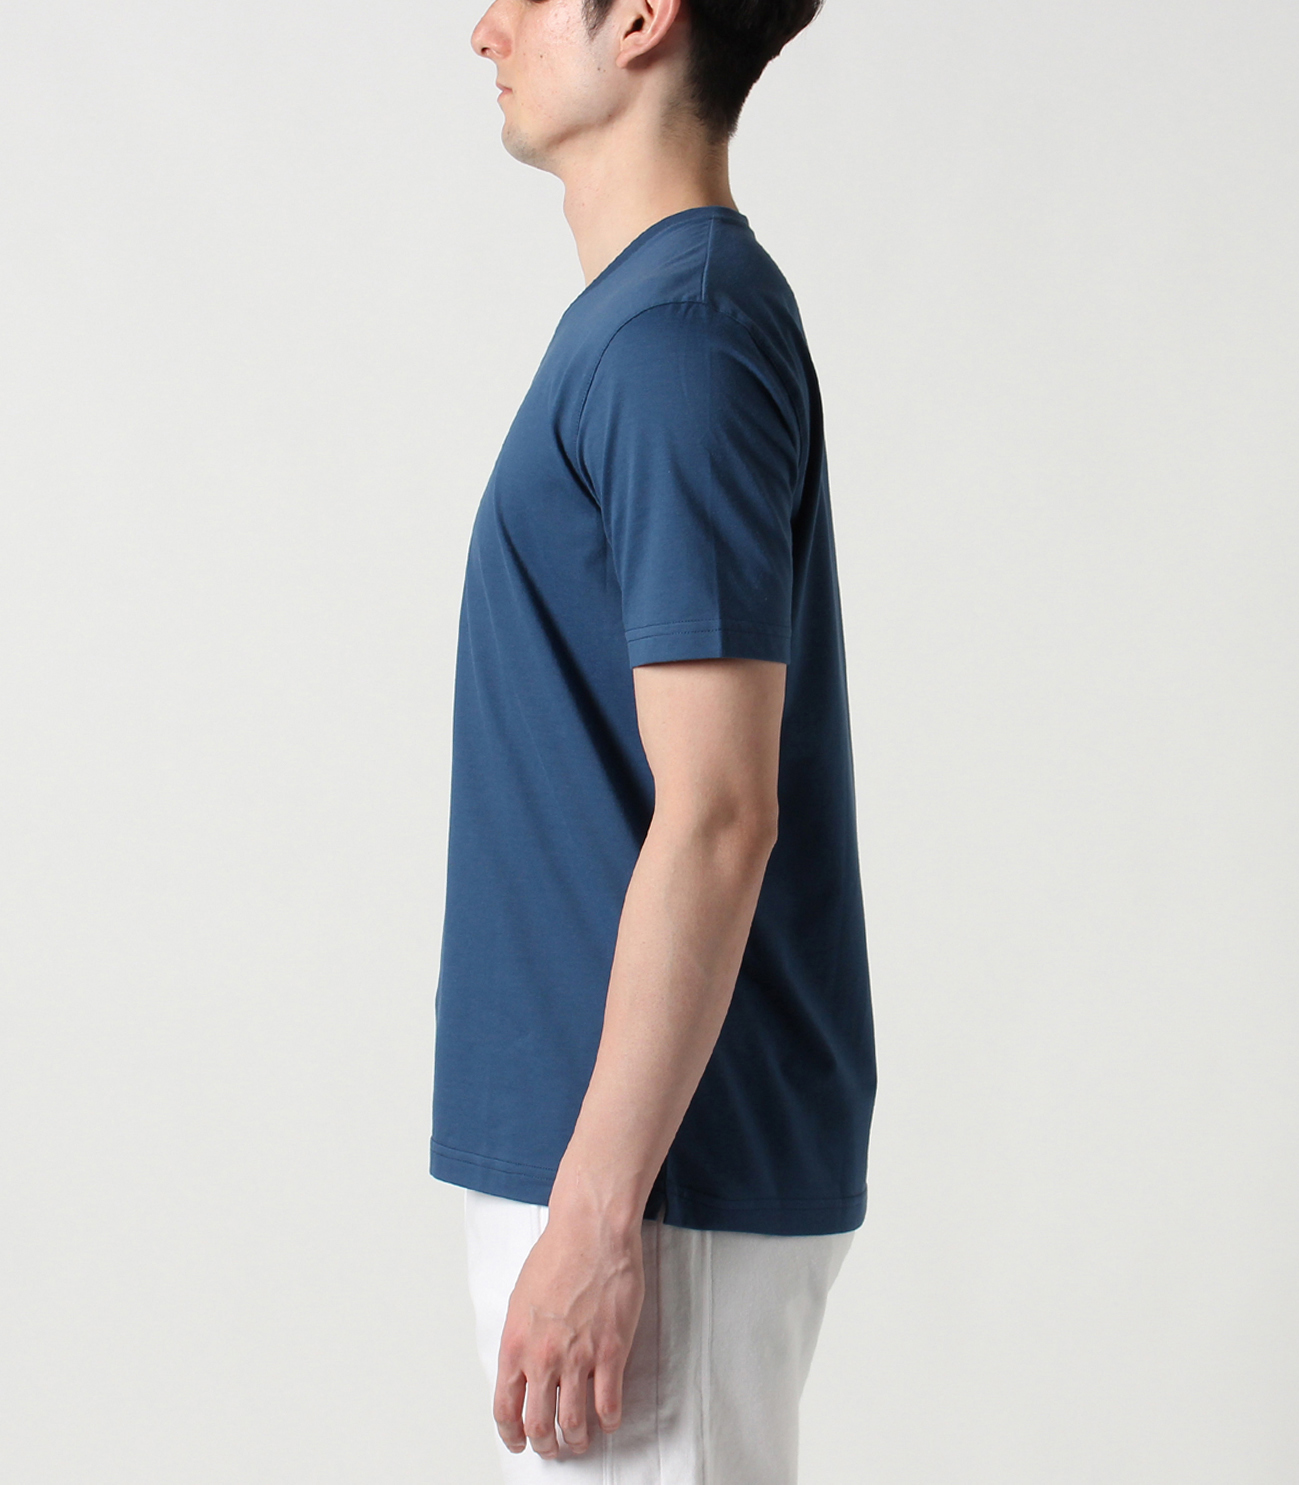 powdery cotton v-neck 詳細画像 white 3